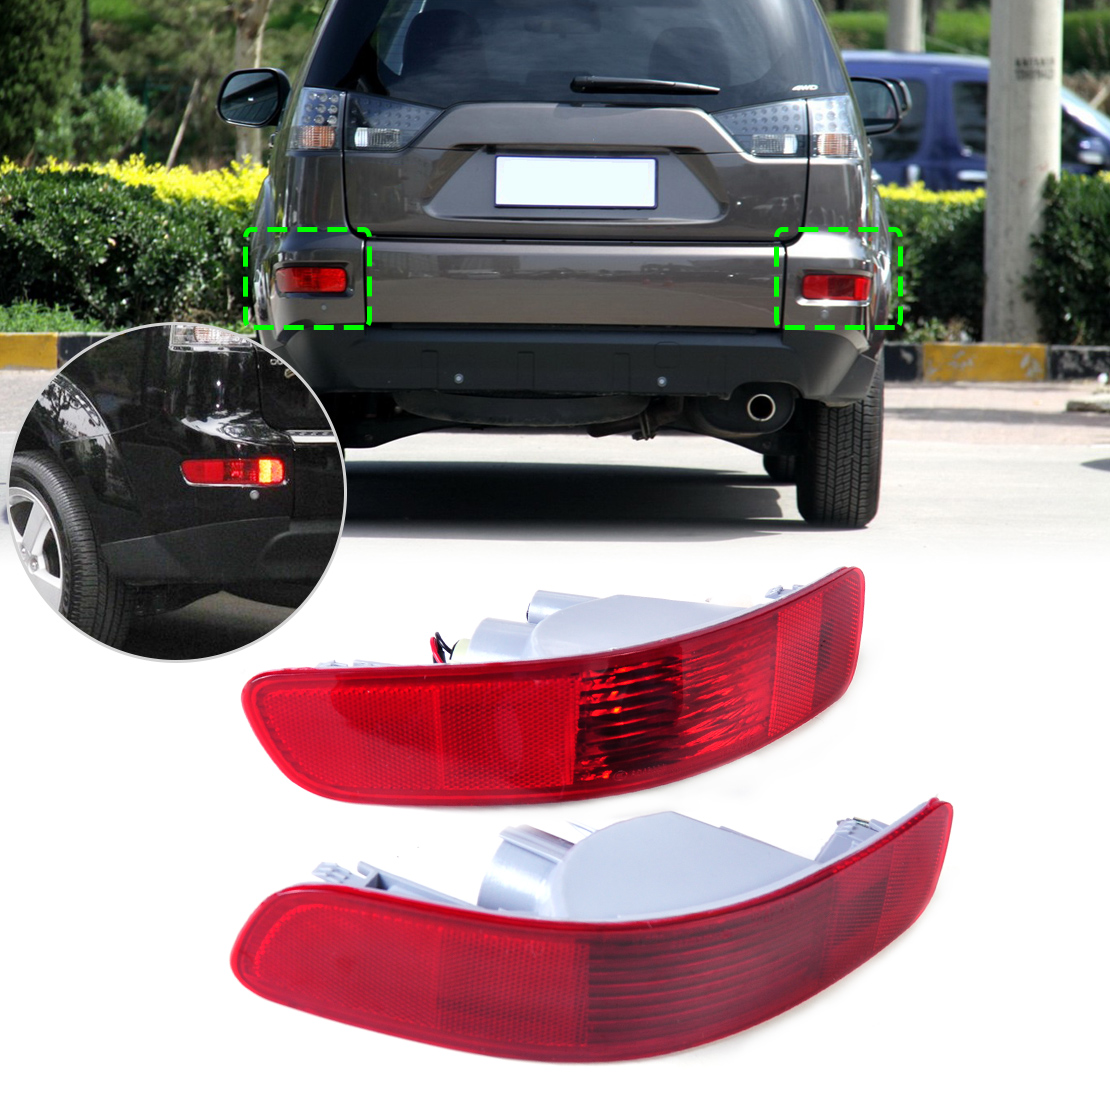 beler 2x Rear Right Left Tail Fog Light Lamp Reflector 8352A005 8337A015 for Mitsubishi Outlander 2007 2008 2009 2010 2011 2012 rear fog lamp spare tire cover tail bumper light fit for mitsubishi pajero shogun v87 v93 v97 2007 2008 2009 2010 2011 2012 2015